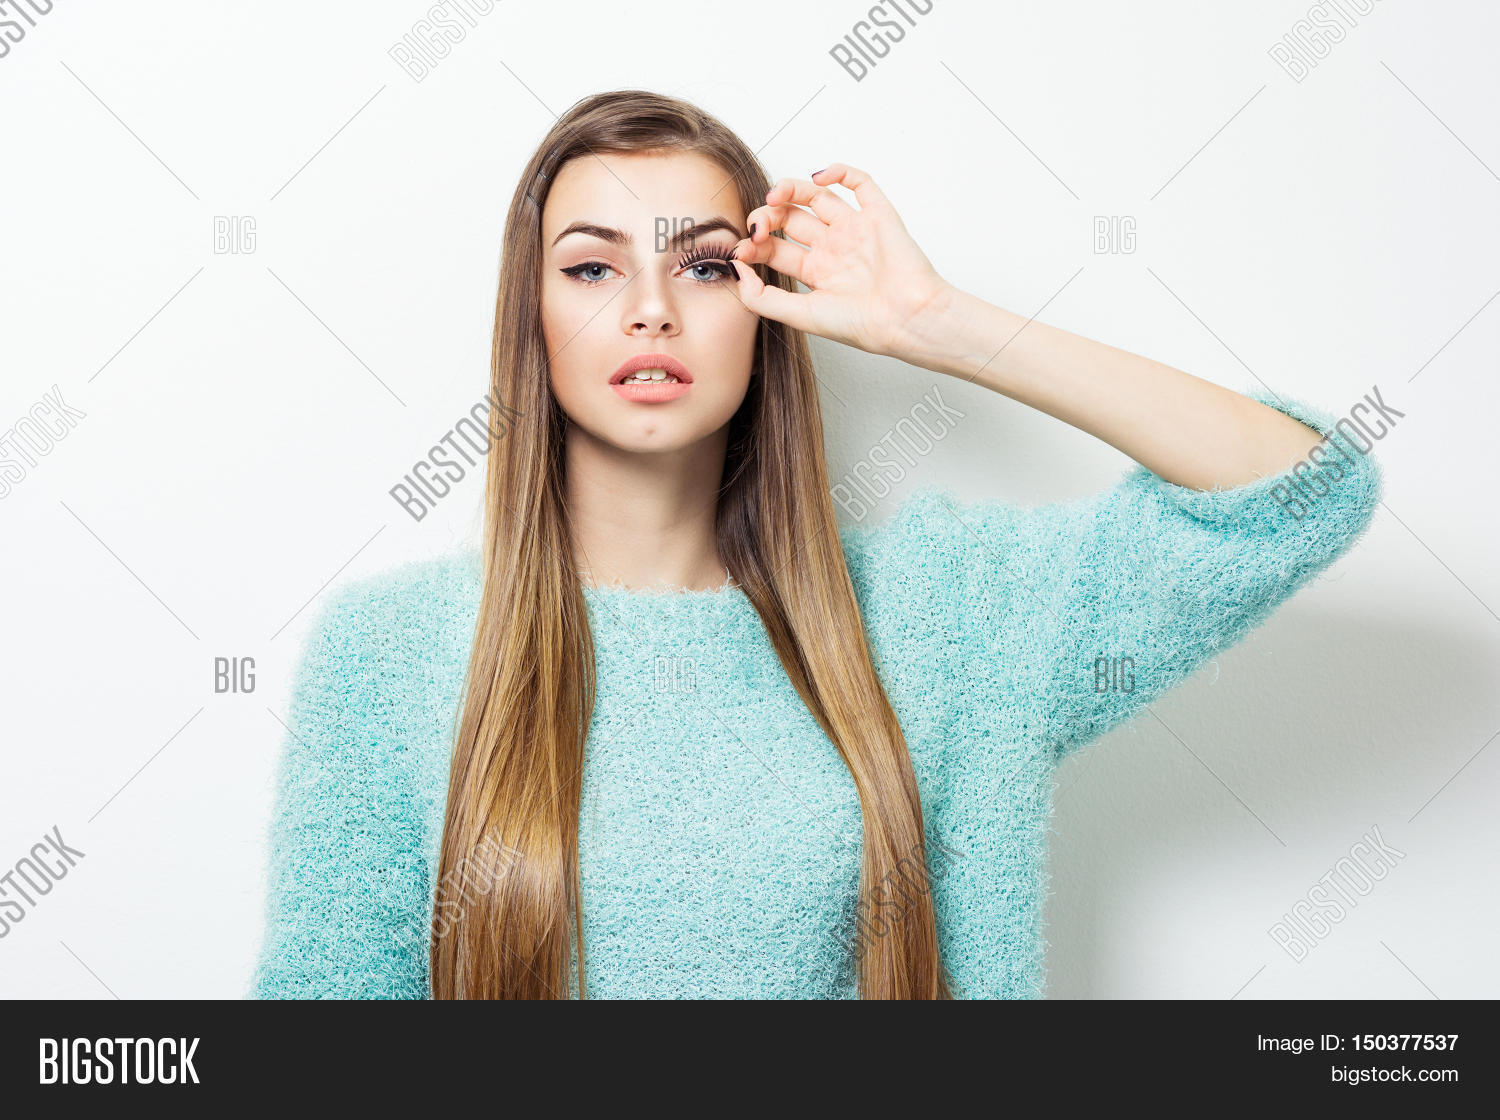 Gorgeous Young Blonde Image Photo Free Trial Bigstock